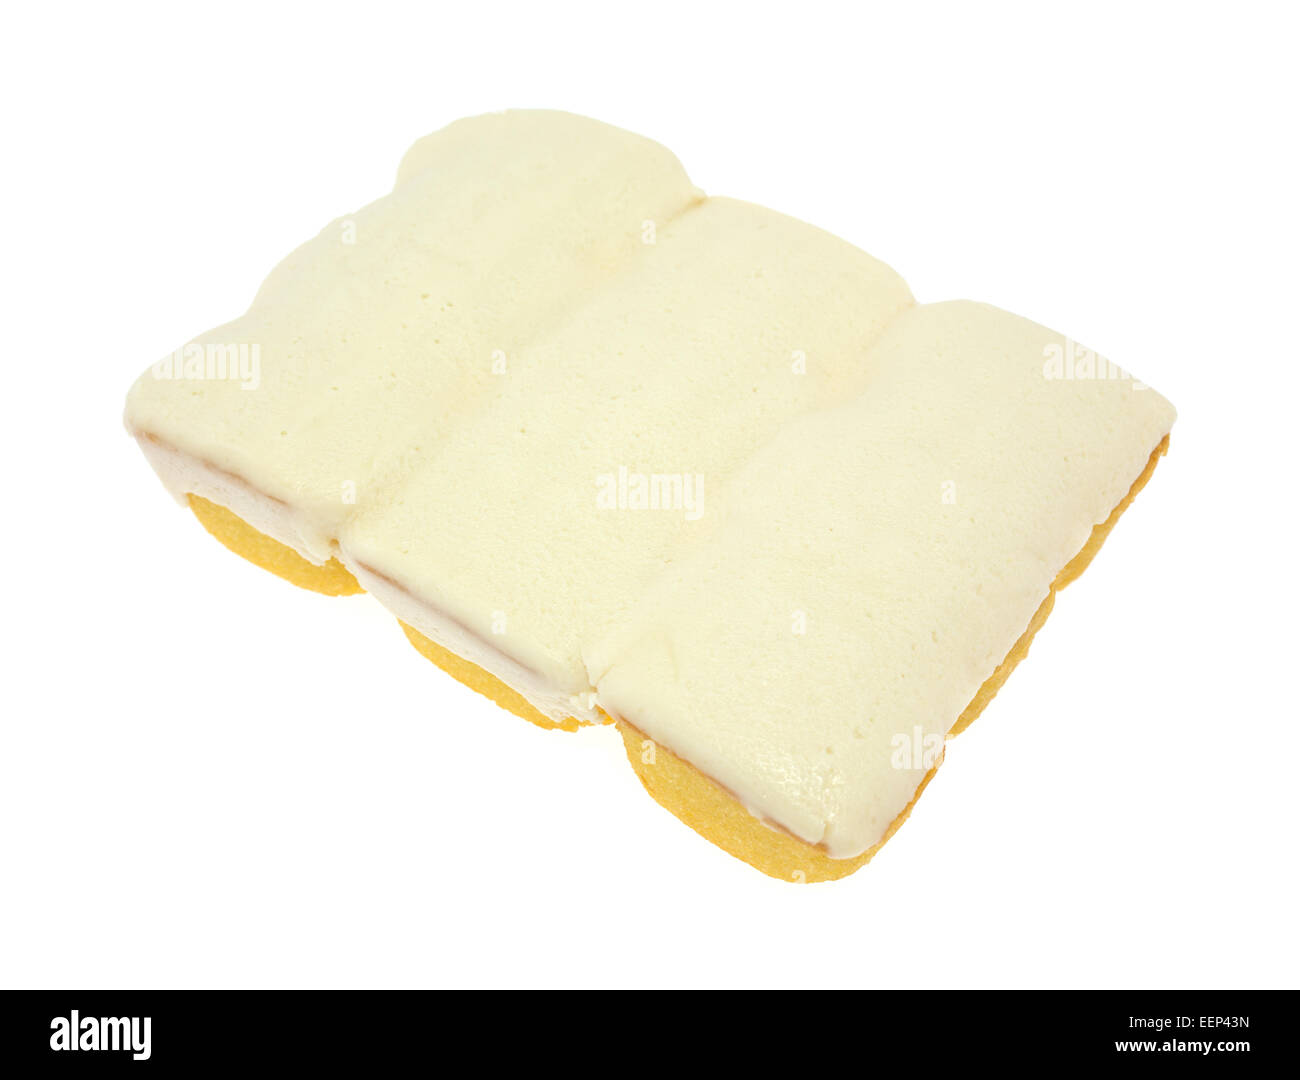 Three bite size yellow snack cakes with vanilla icing on a white background. - Stock Image